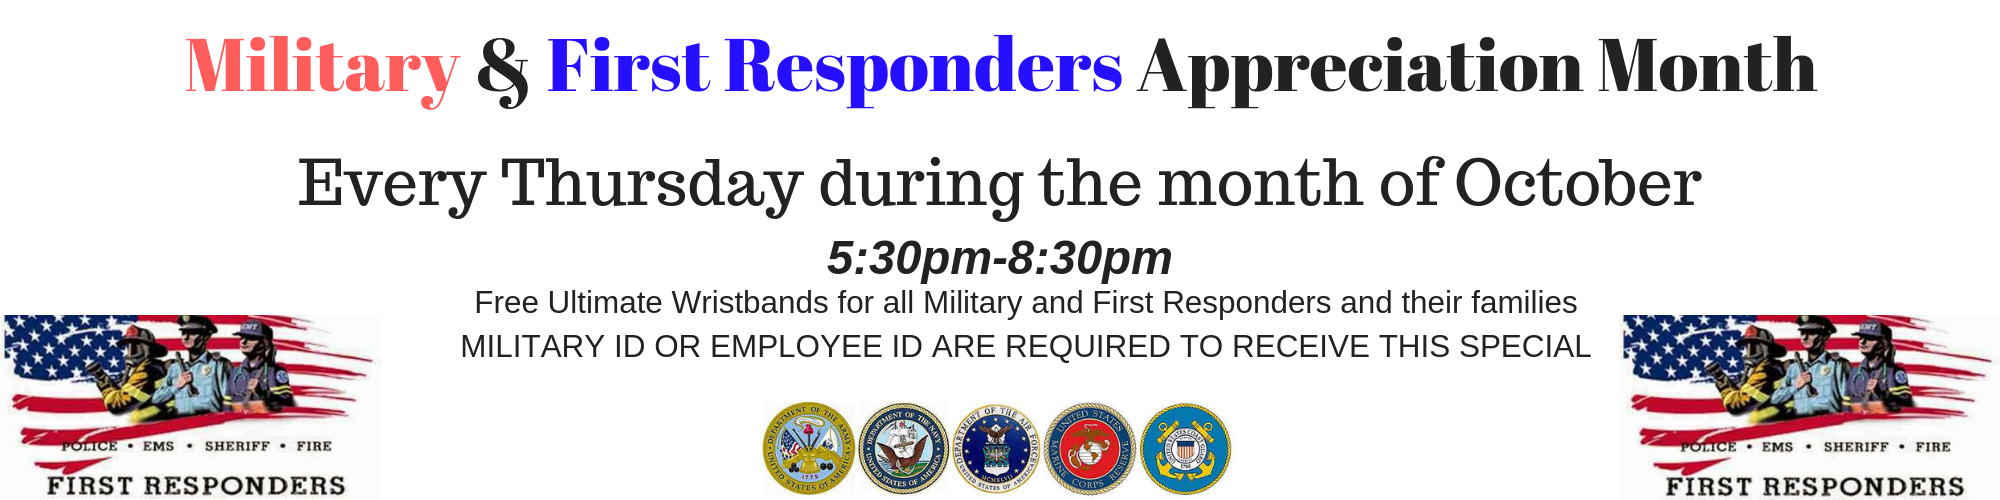 First Responders & Military Appreciation Month